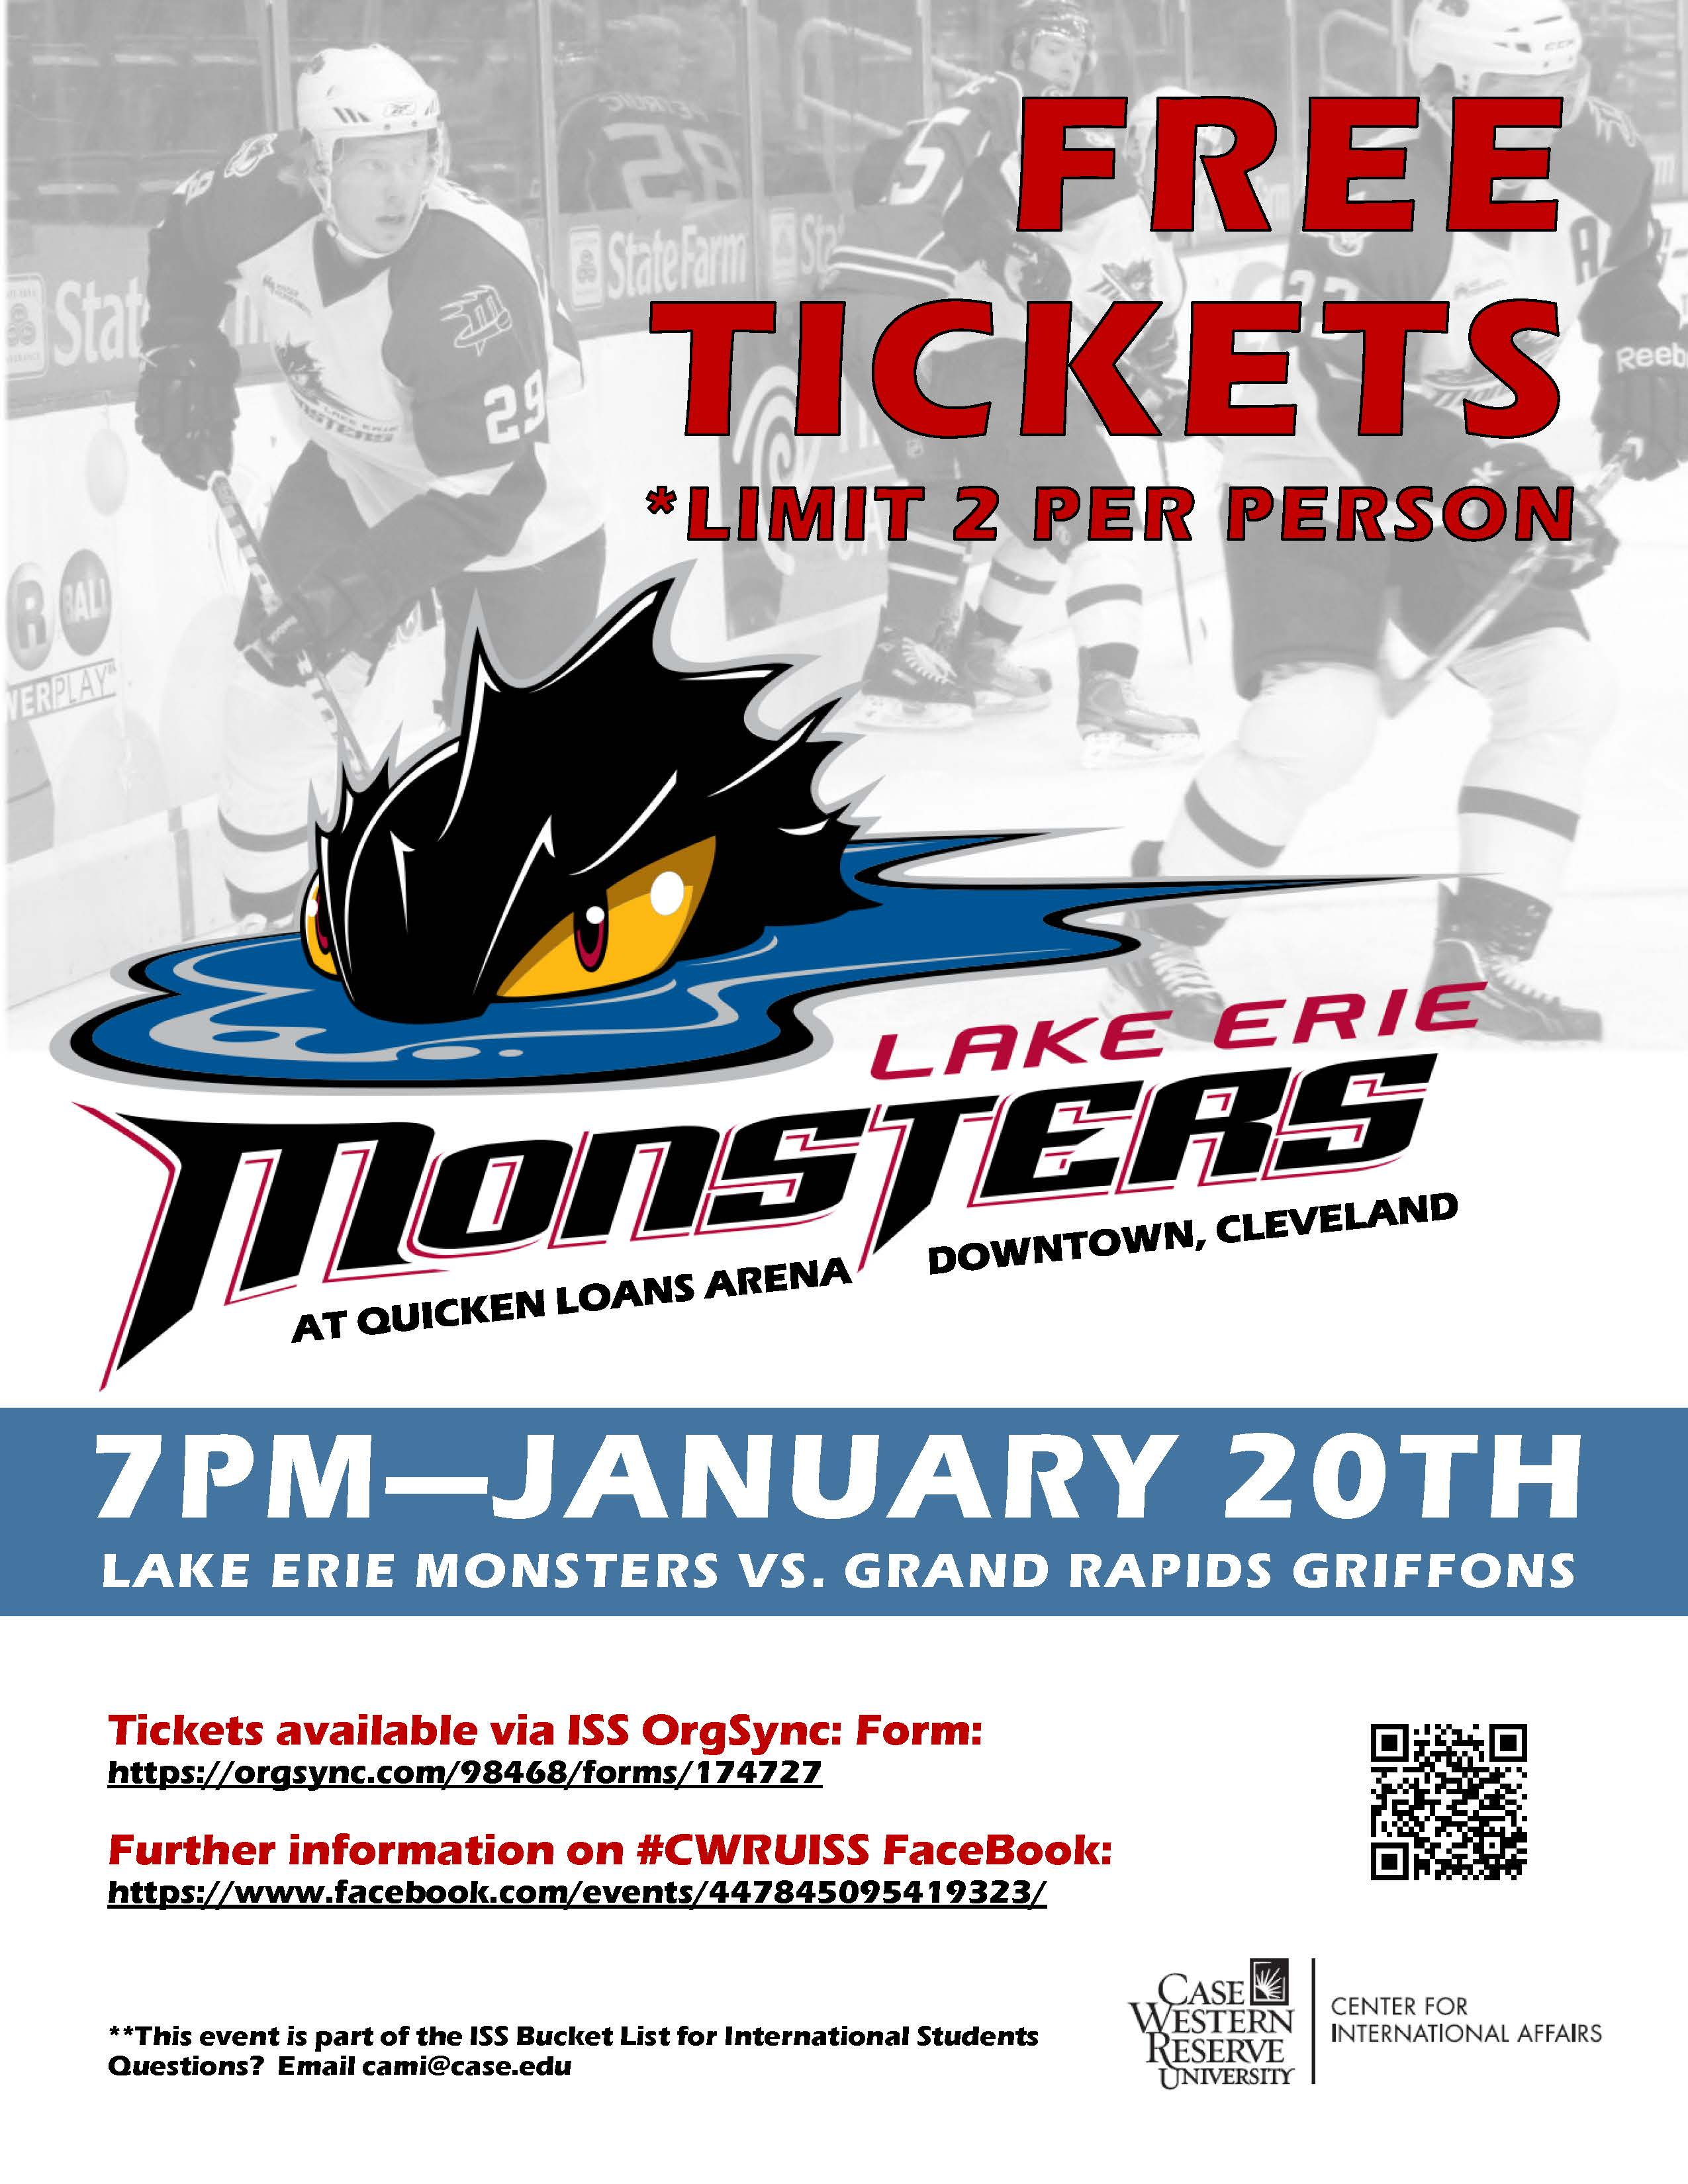 Lake Erie Monsters Game Flyer